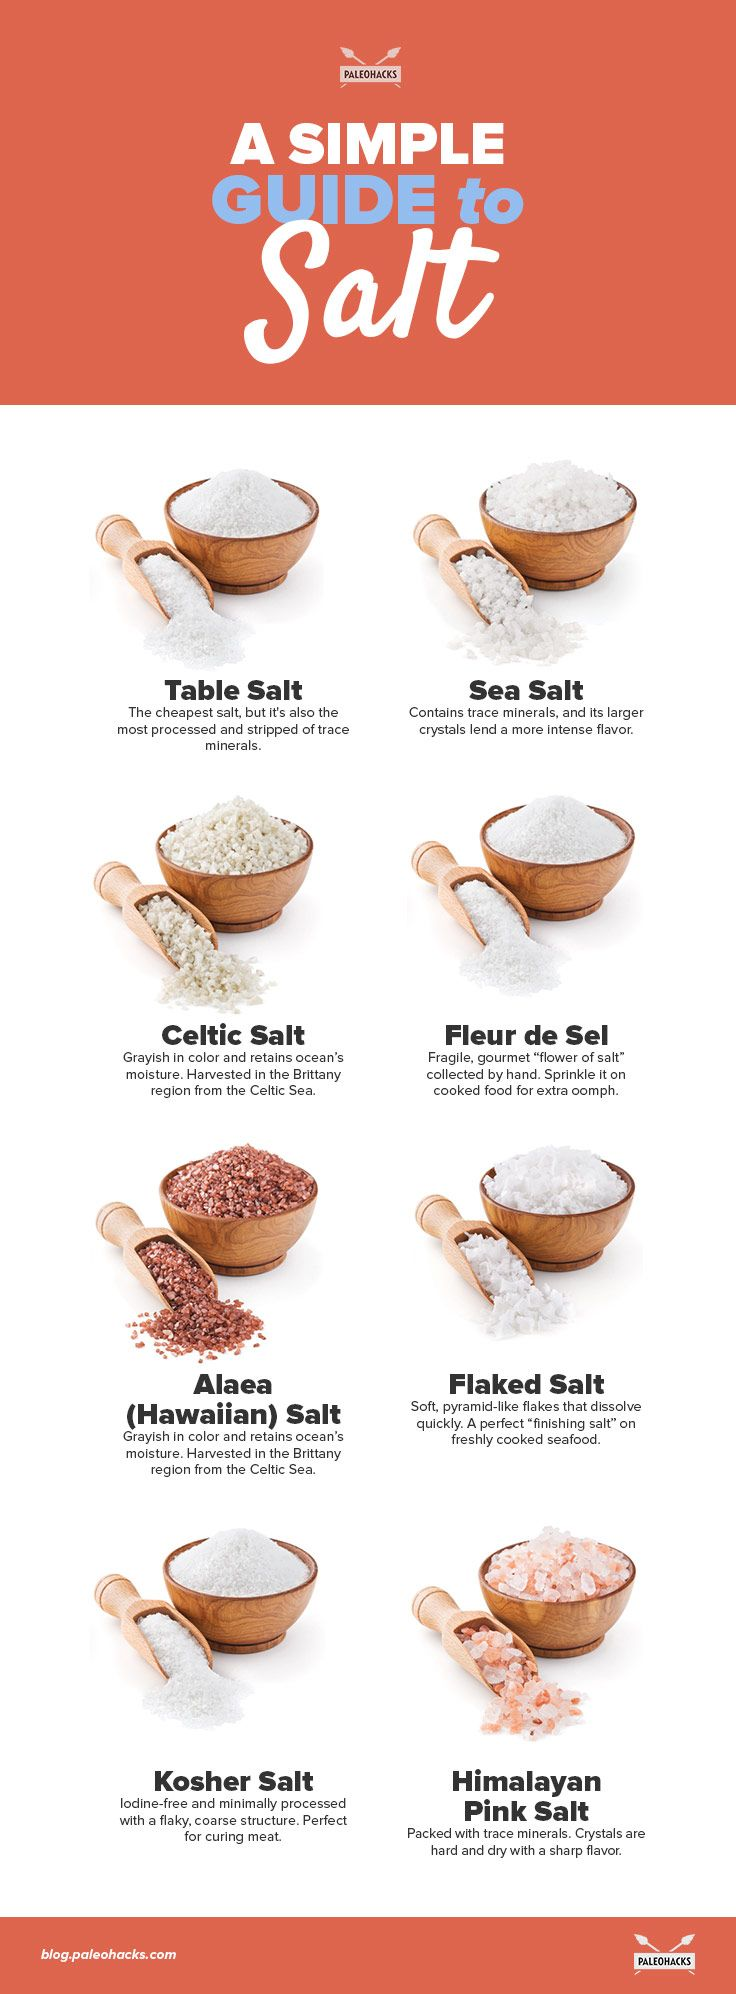 Salt by paleohacks: It seems like such a simple thing, but it's a bundle of confusion for… #Salt